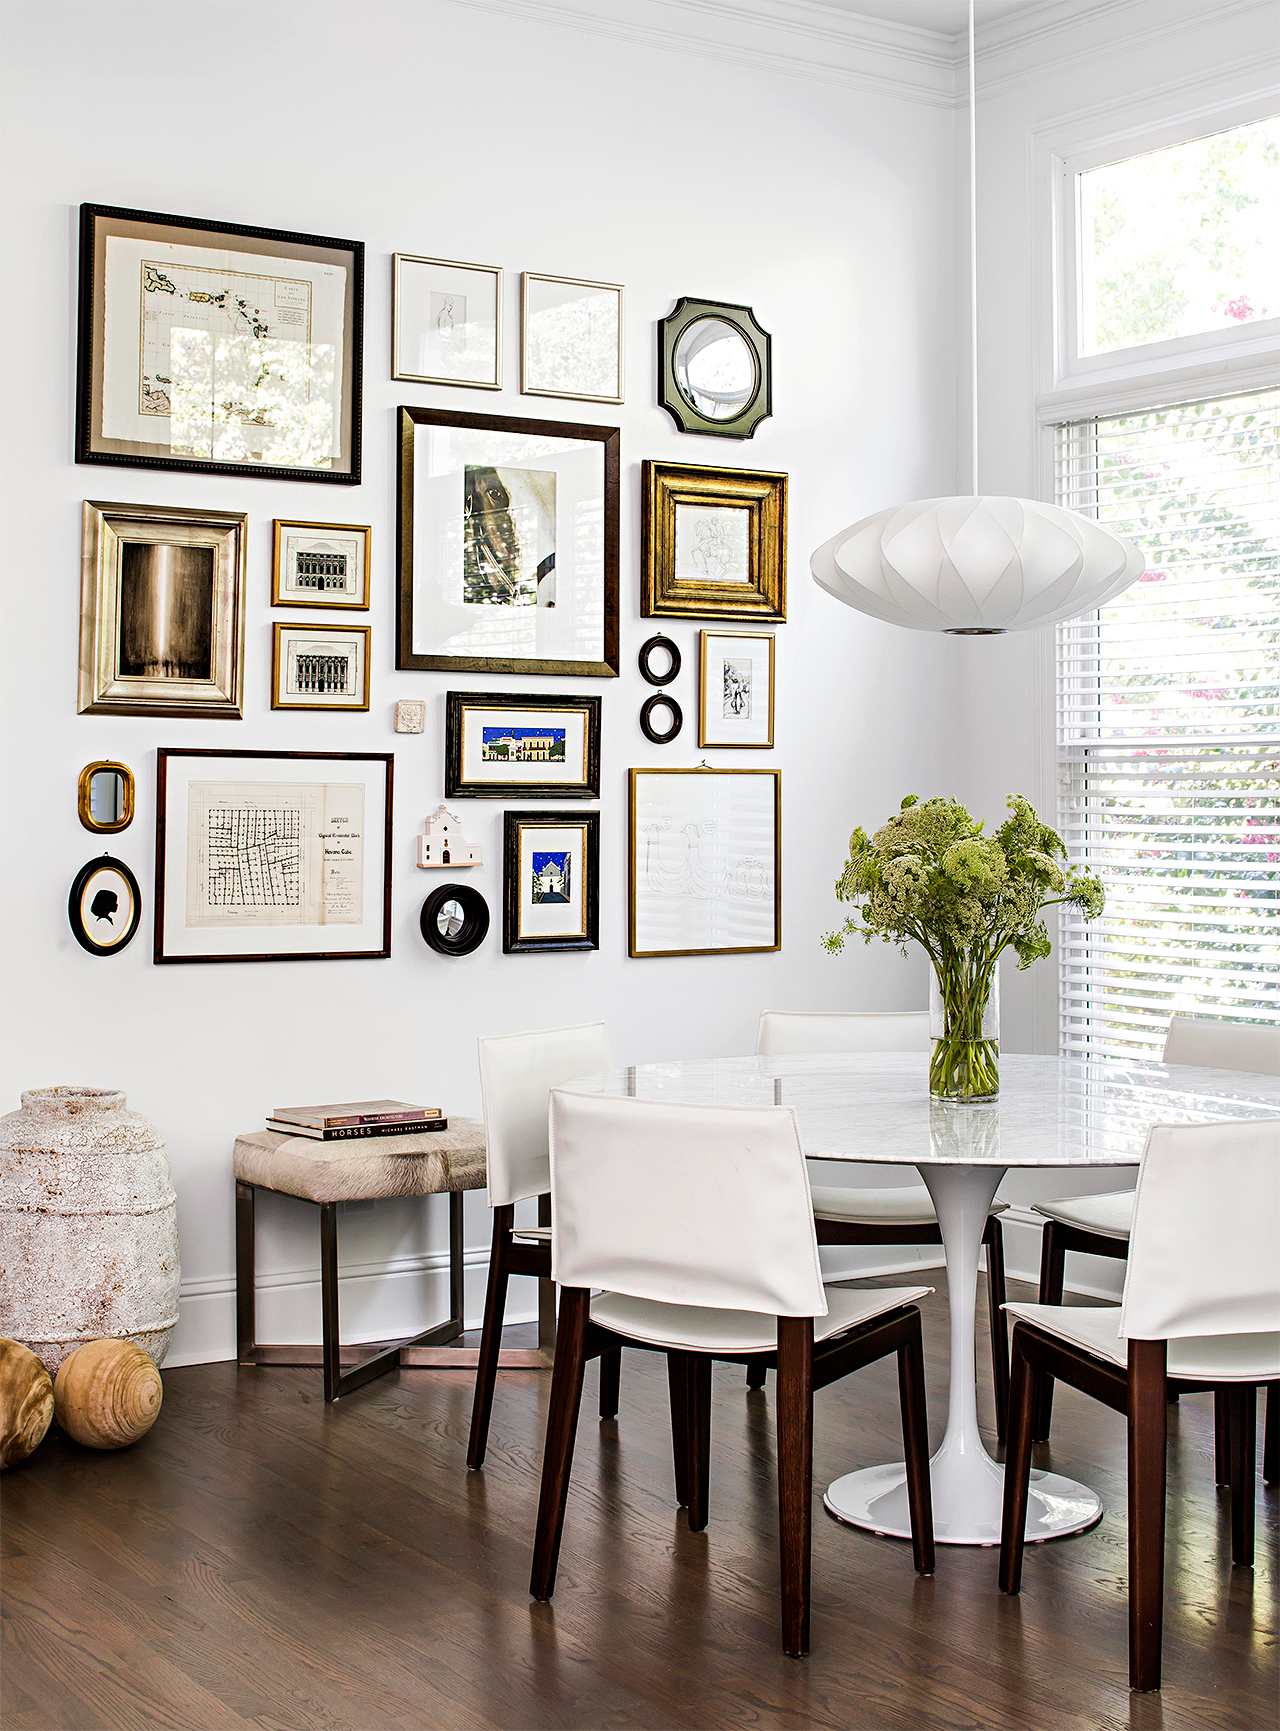 gallery wall in dining room with warm wood tones